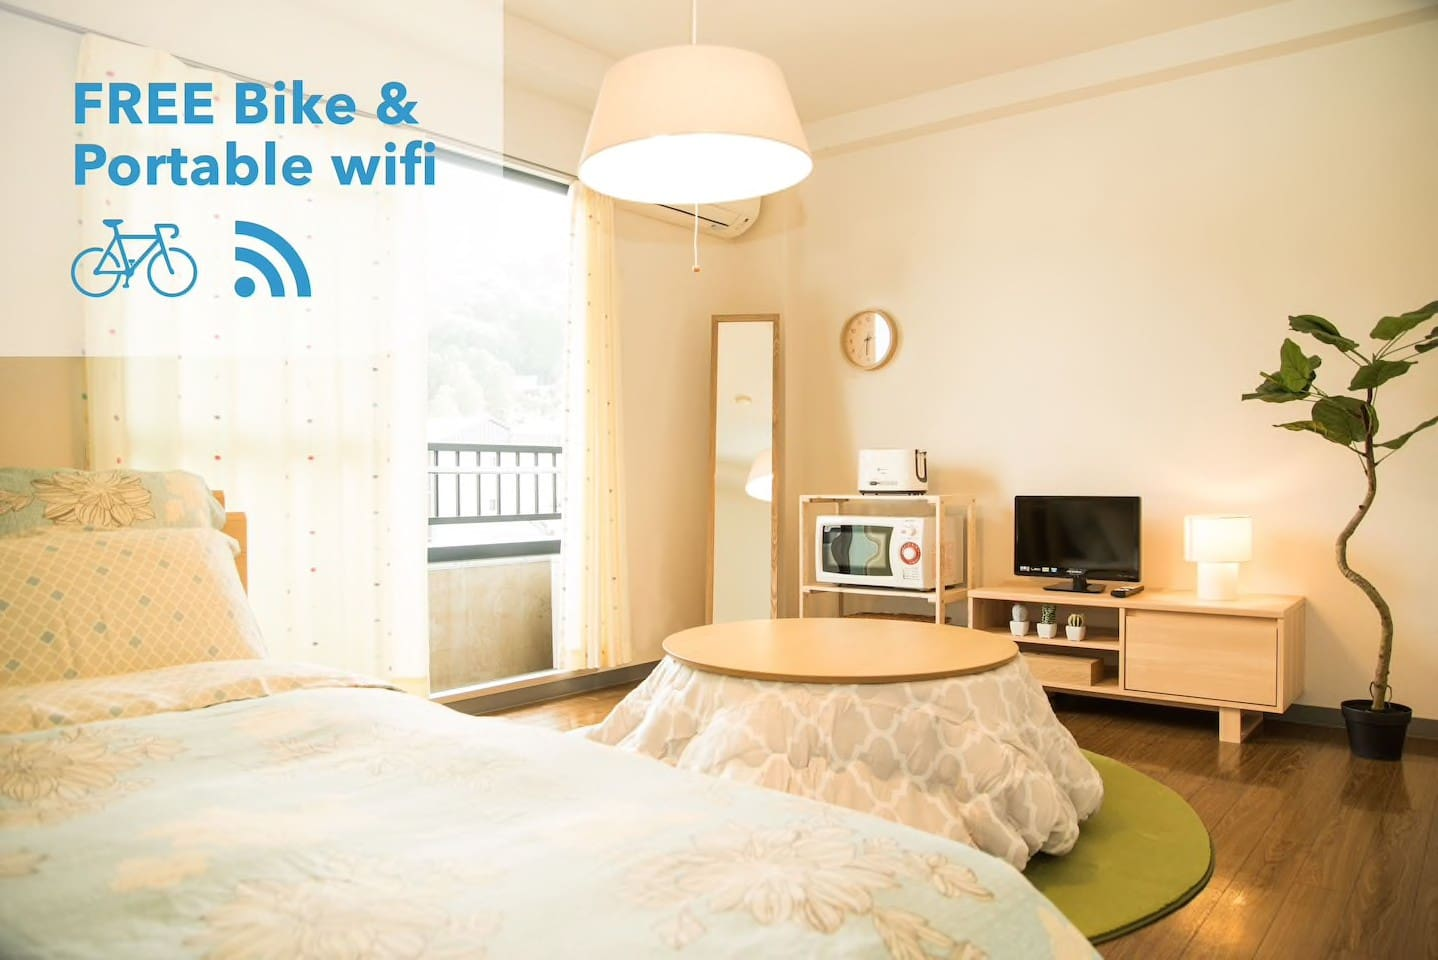 Small cozy room 301 walk 7m to Gion + Pocket wifi. The room size is 15 square meters. There's a double bed(140/200cm) and a mattress(single).